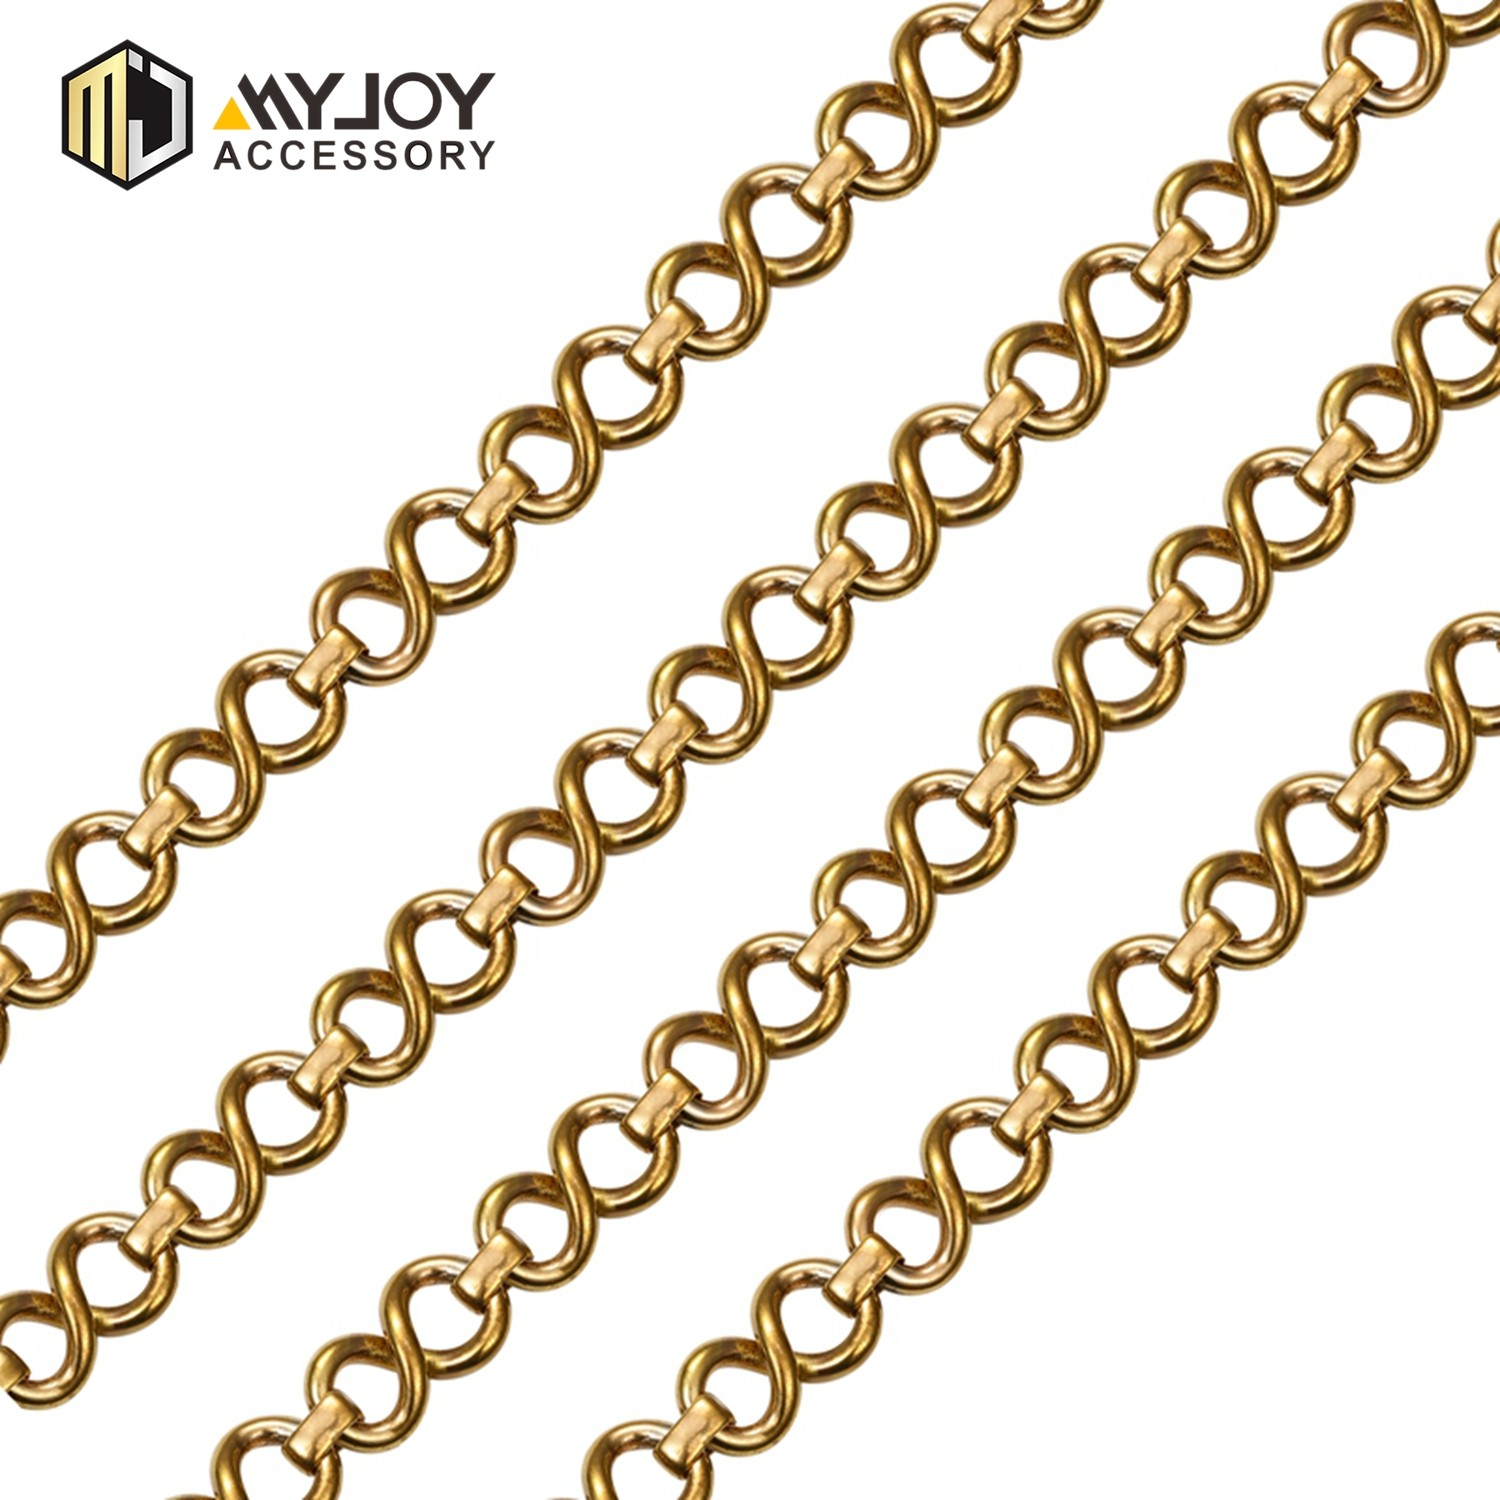 MYJOY Wholesale handbag strap chain Supply for bags-3